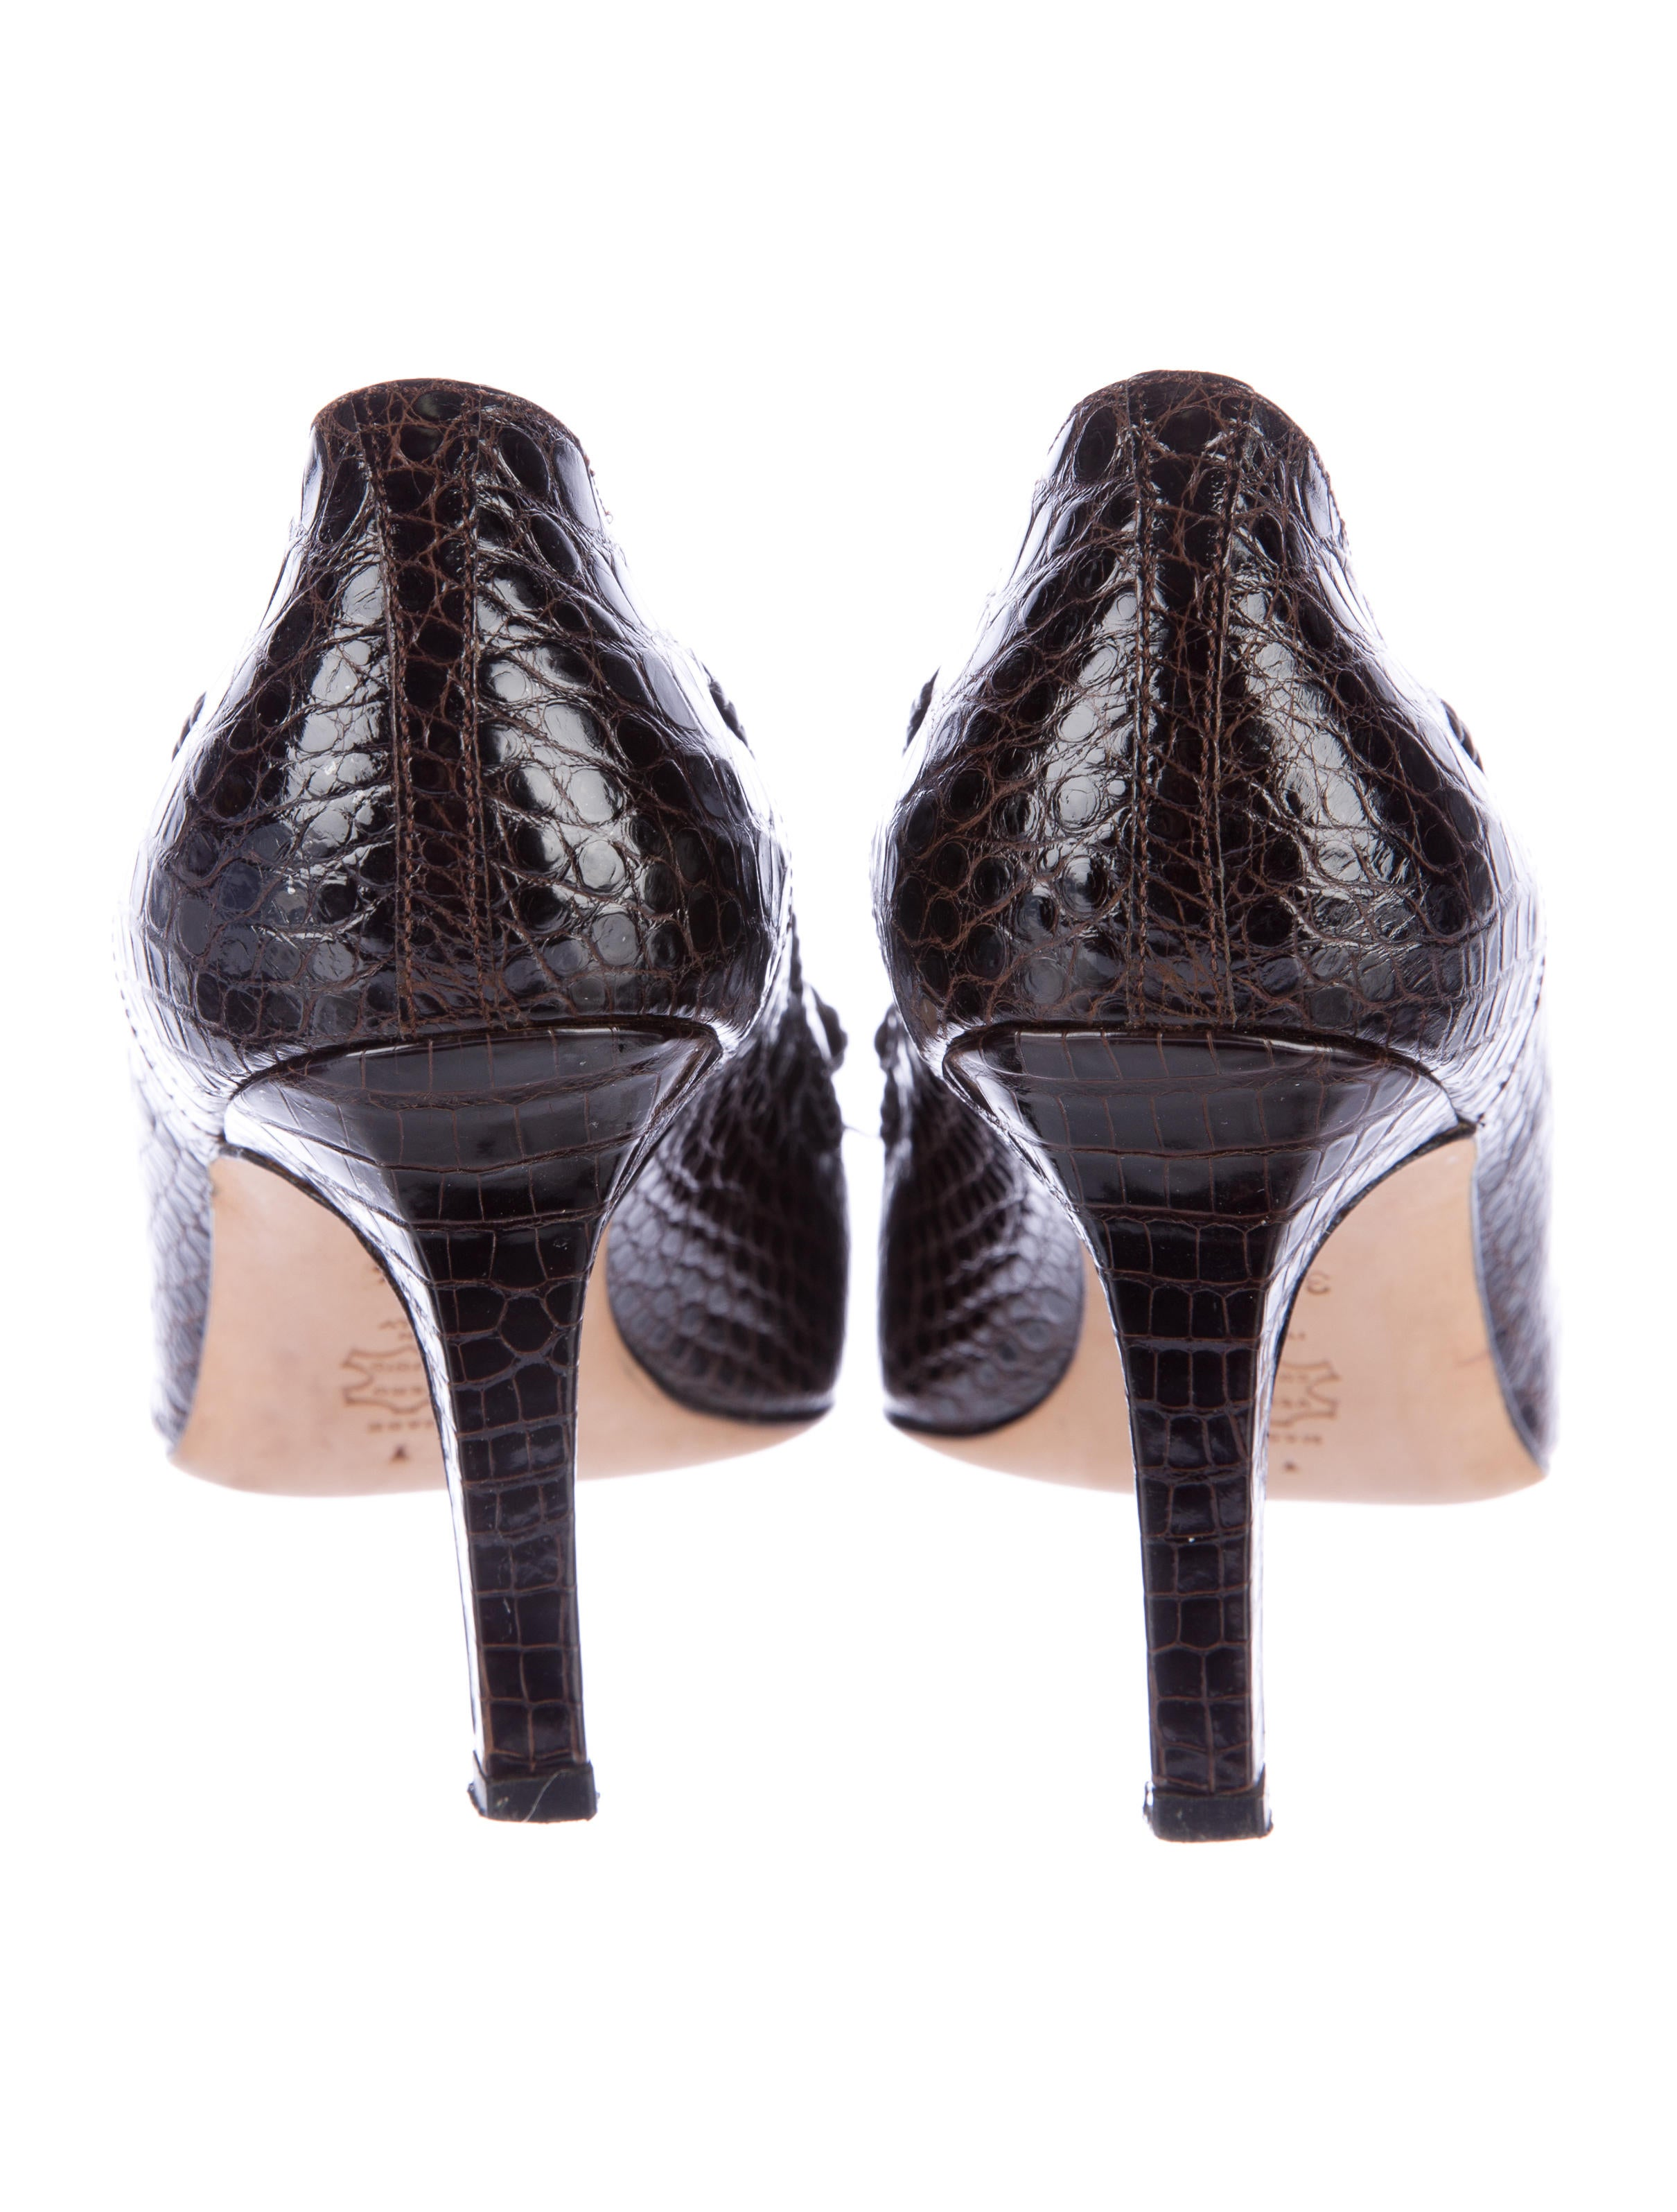 Manolo Blahnik Bow Accented Alligator Pumps Shoes